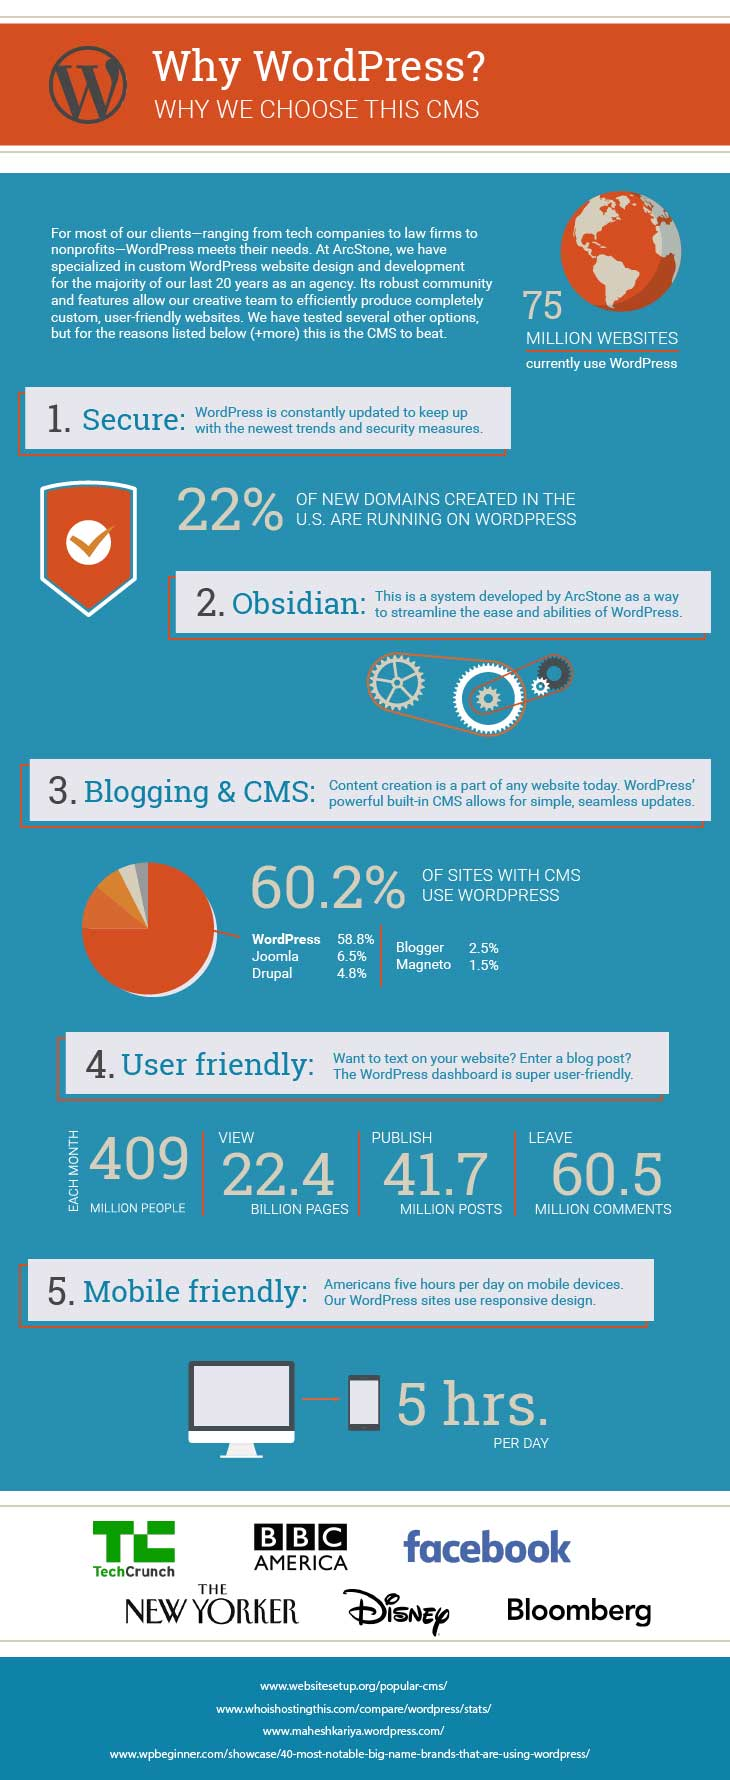 Blog-Why-WordPress-Infographic.jpg